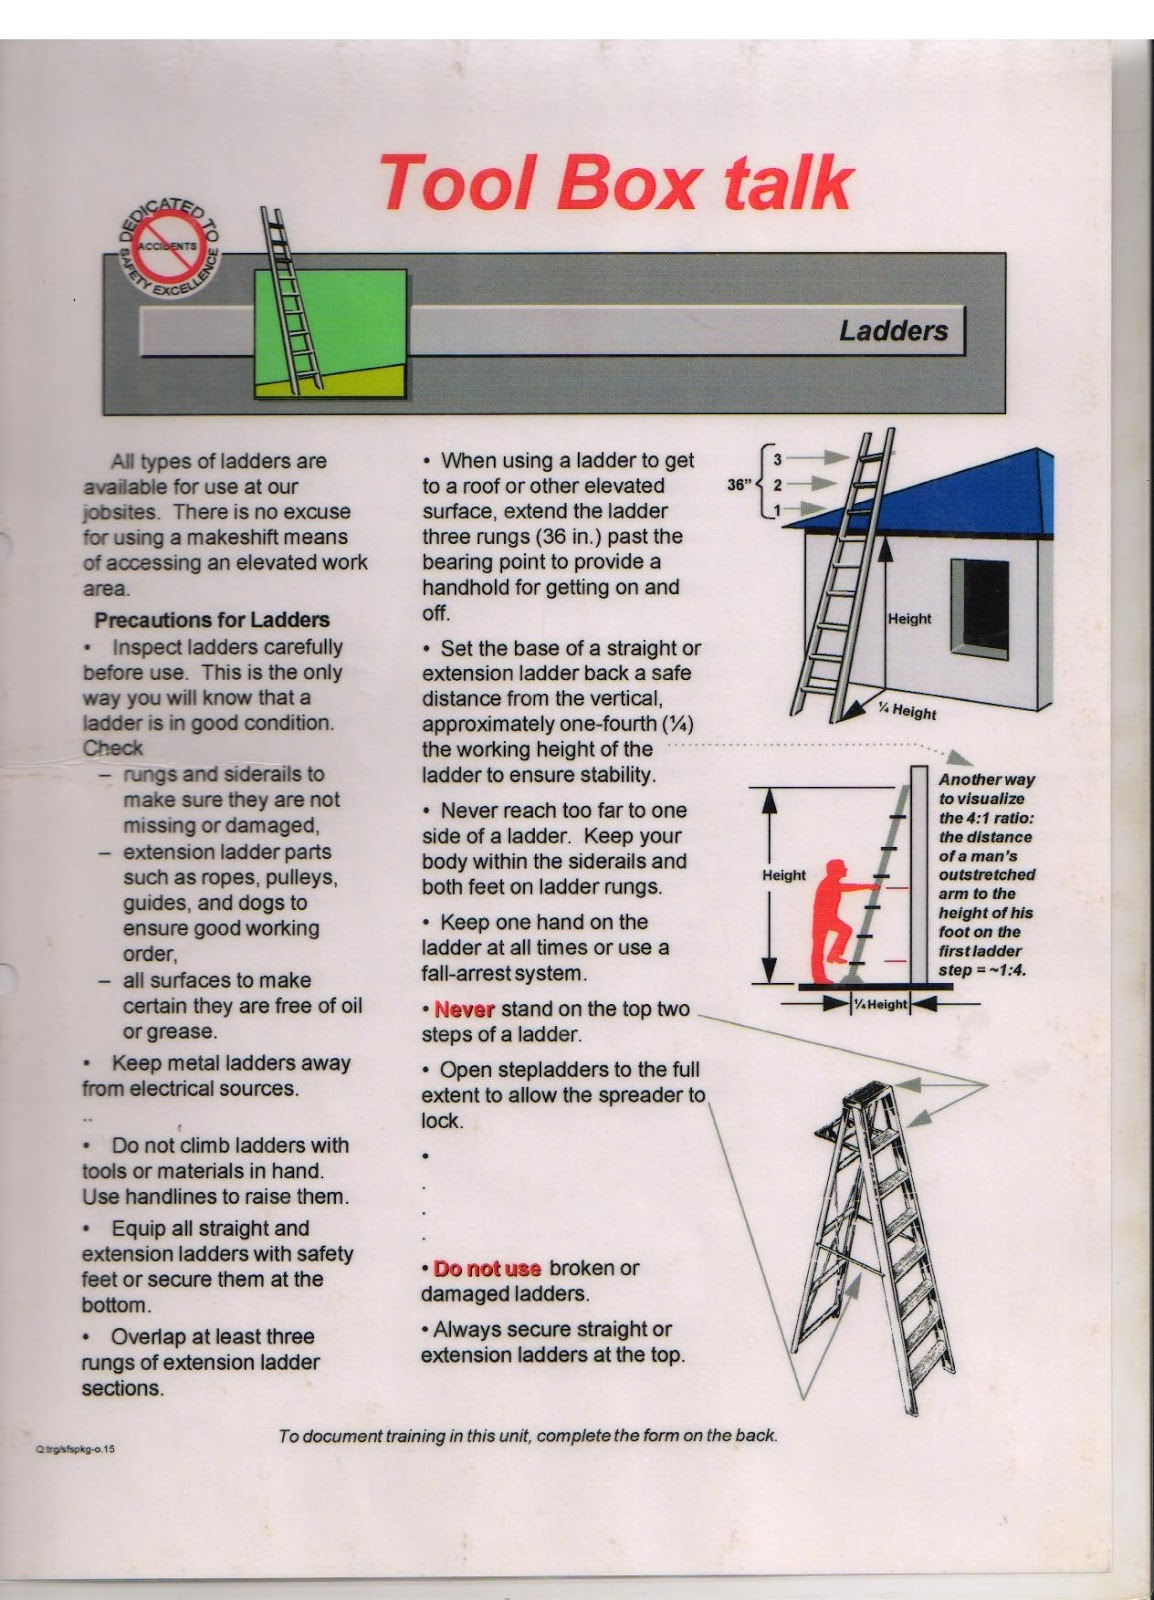 Hsedot Very Simple Safety Toolbox Talk Material